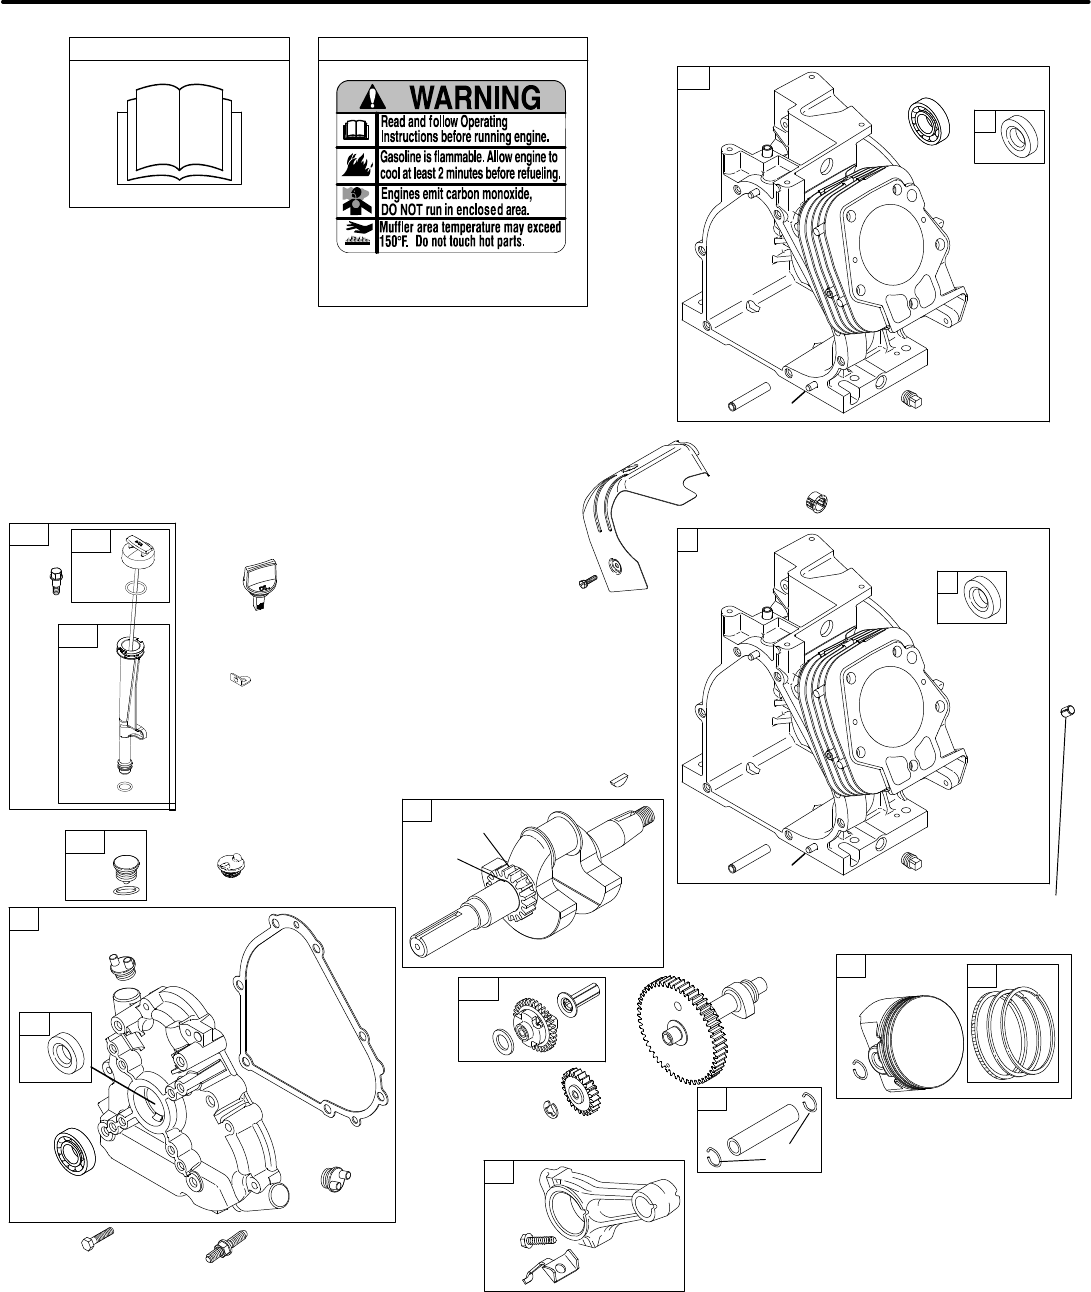 Page 2 of Briggs & Stratton Lawn Mower 205300 User Guide